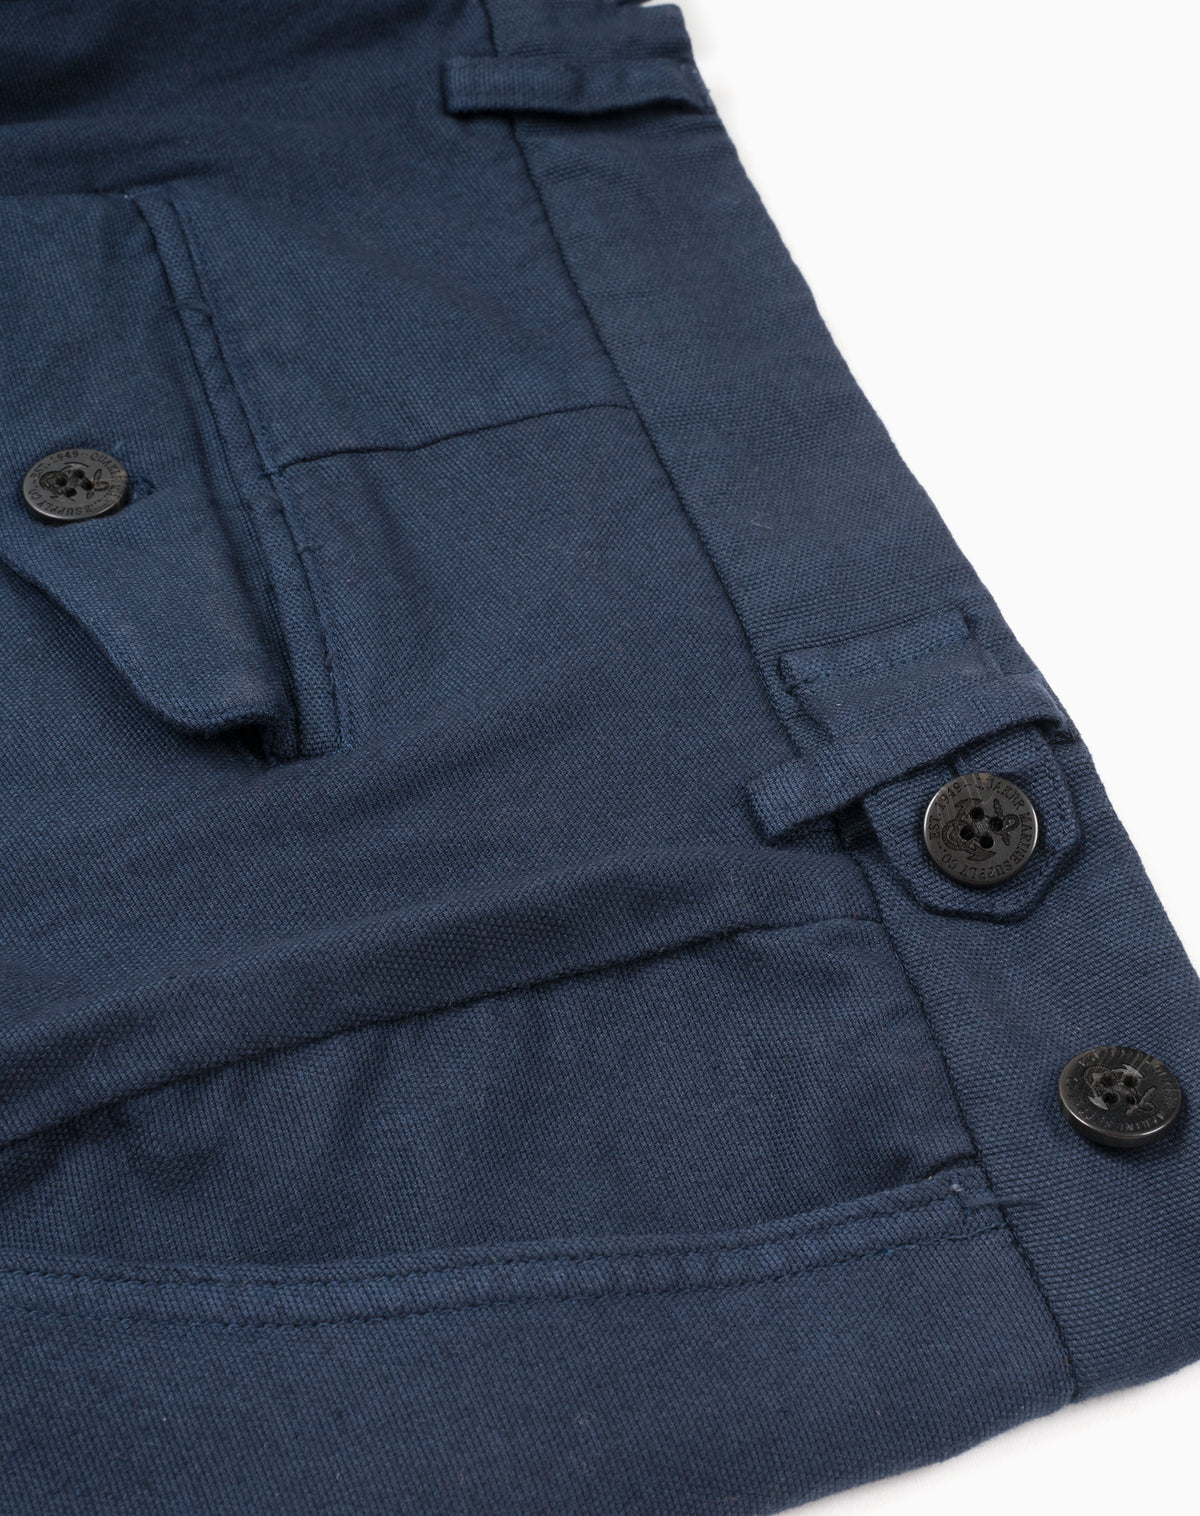 Gates Short in Navy